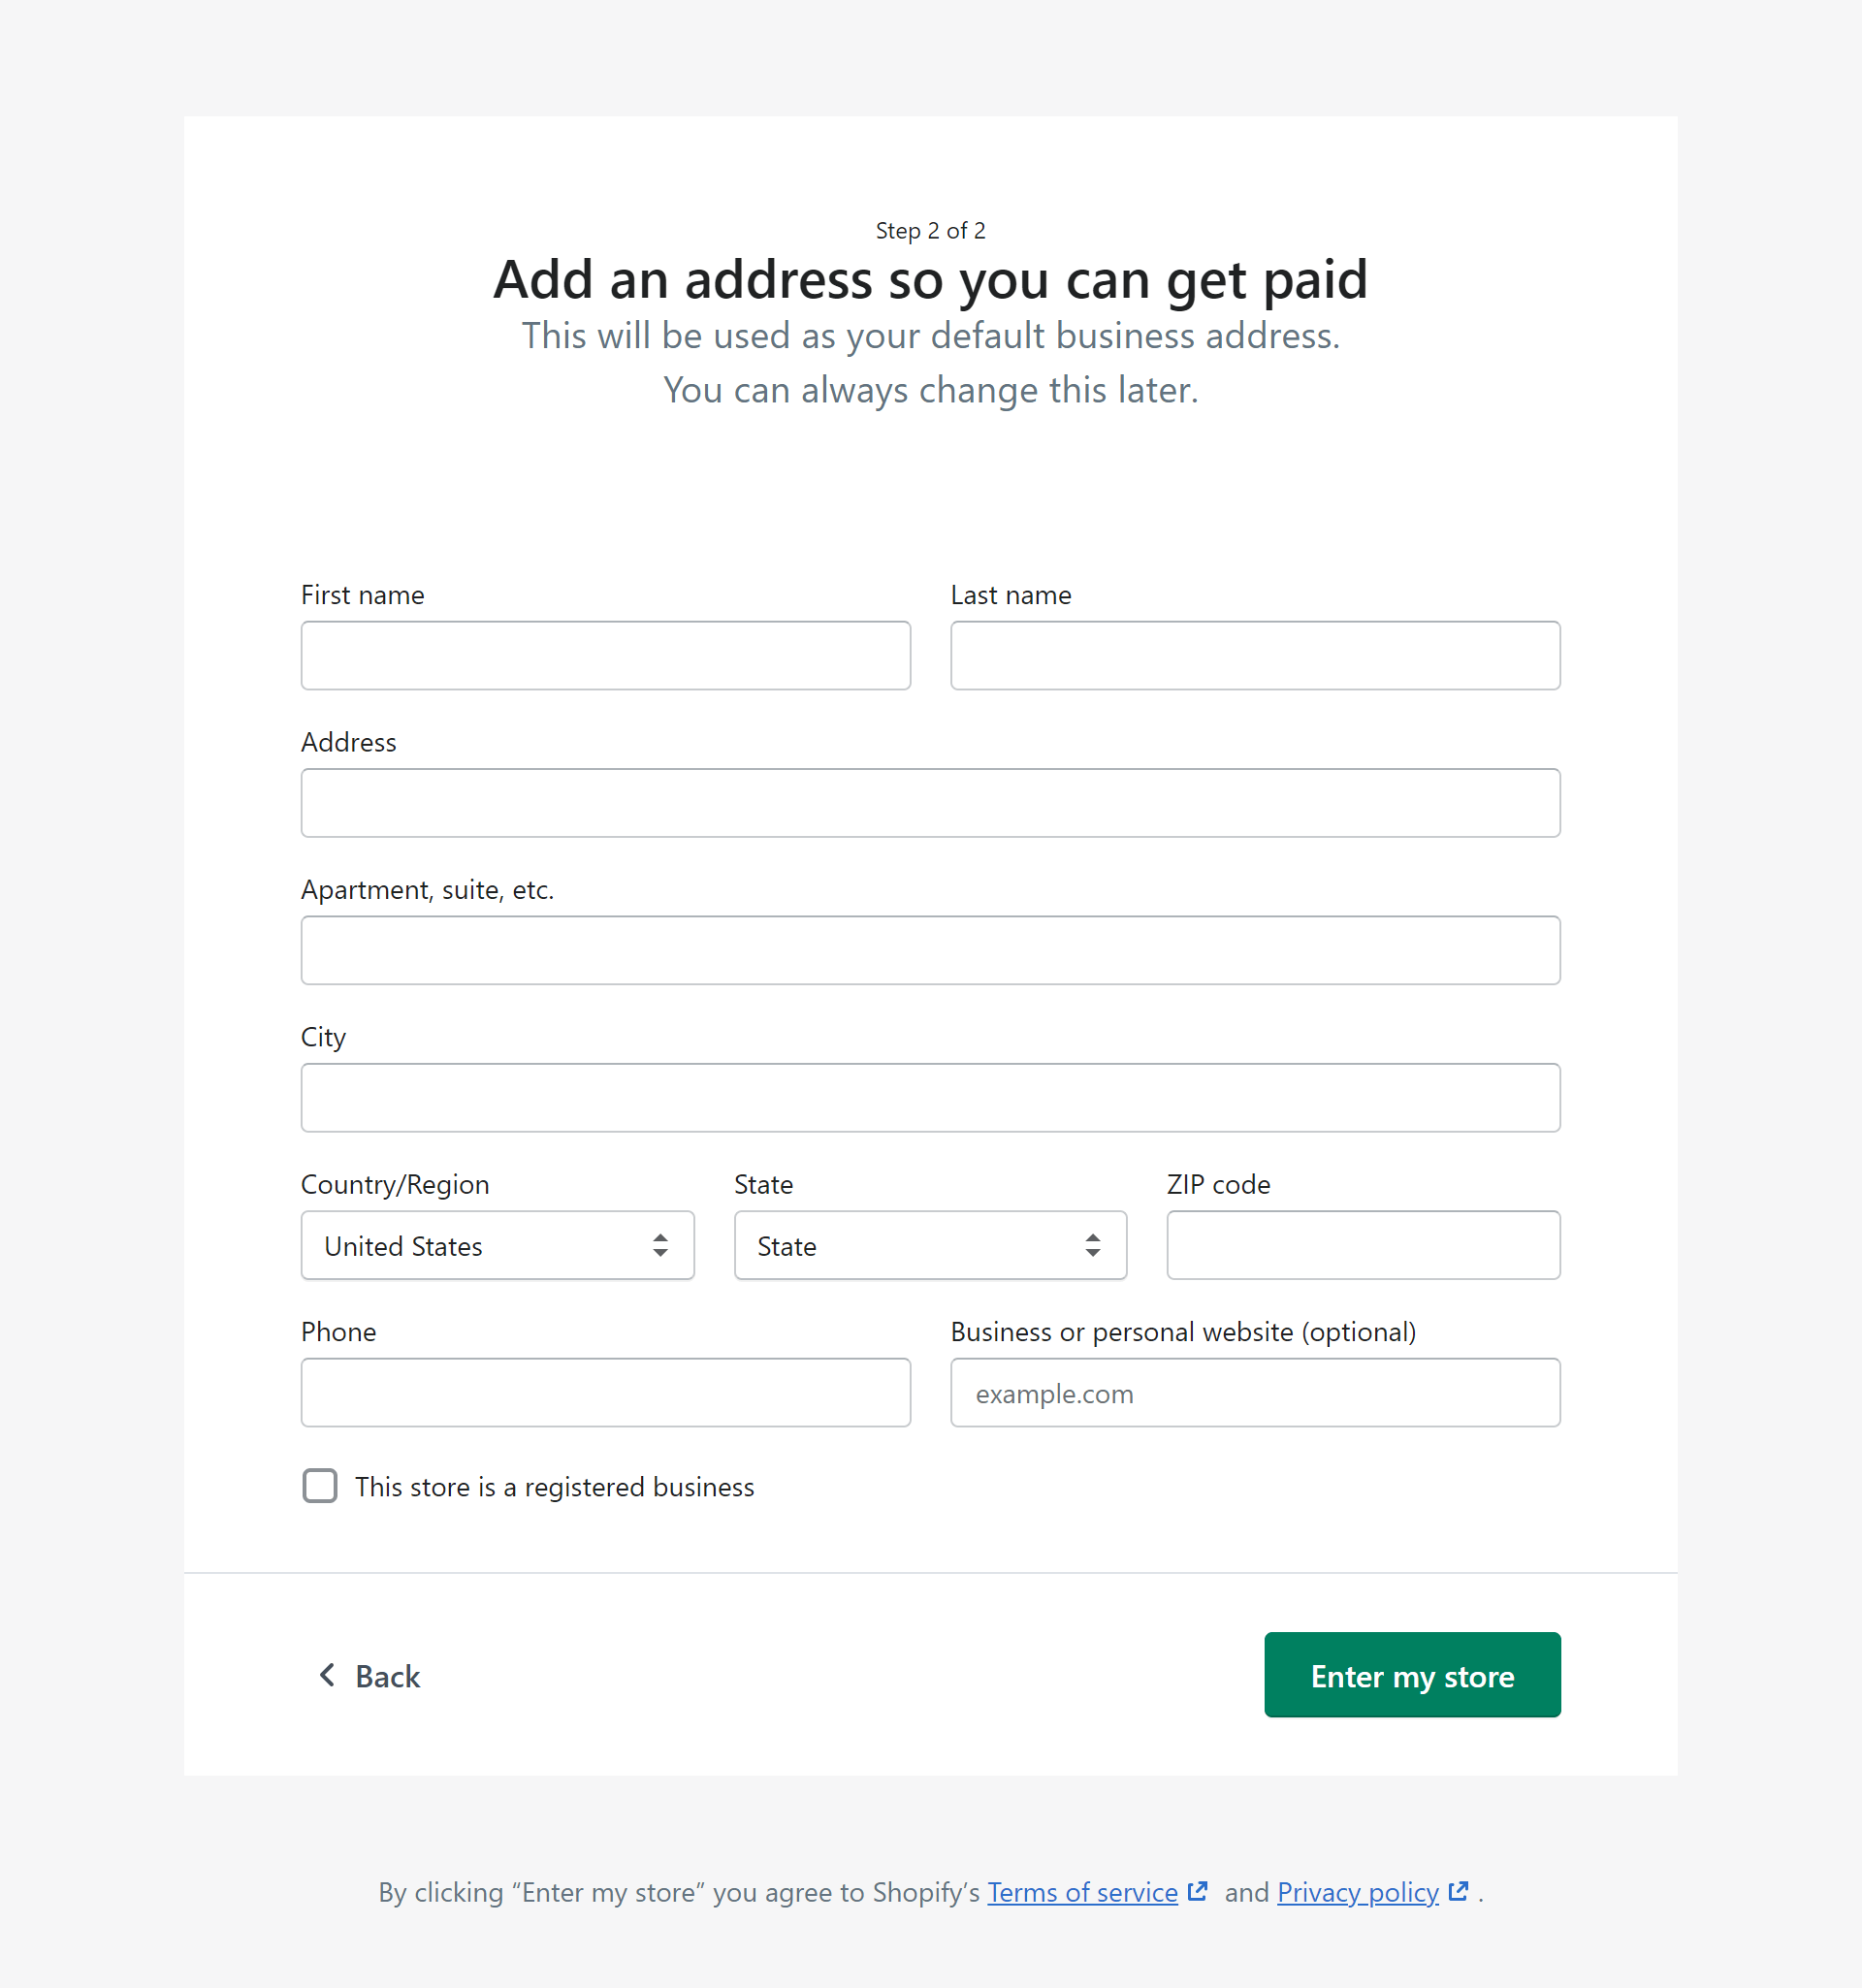 The second step for Shopify's setup.